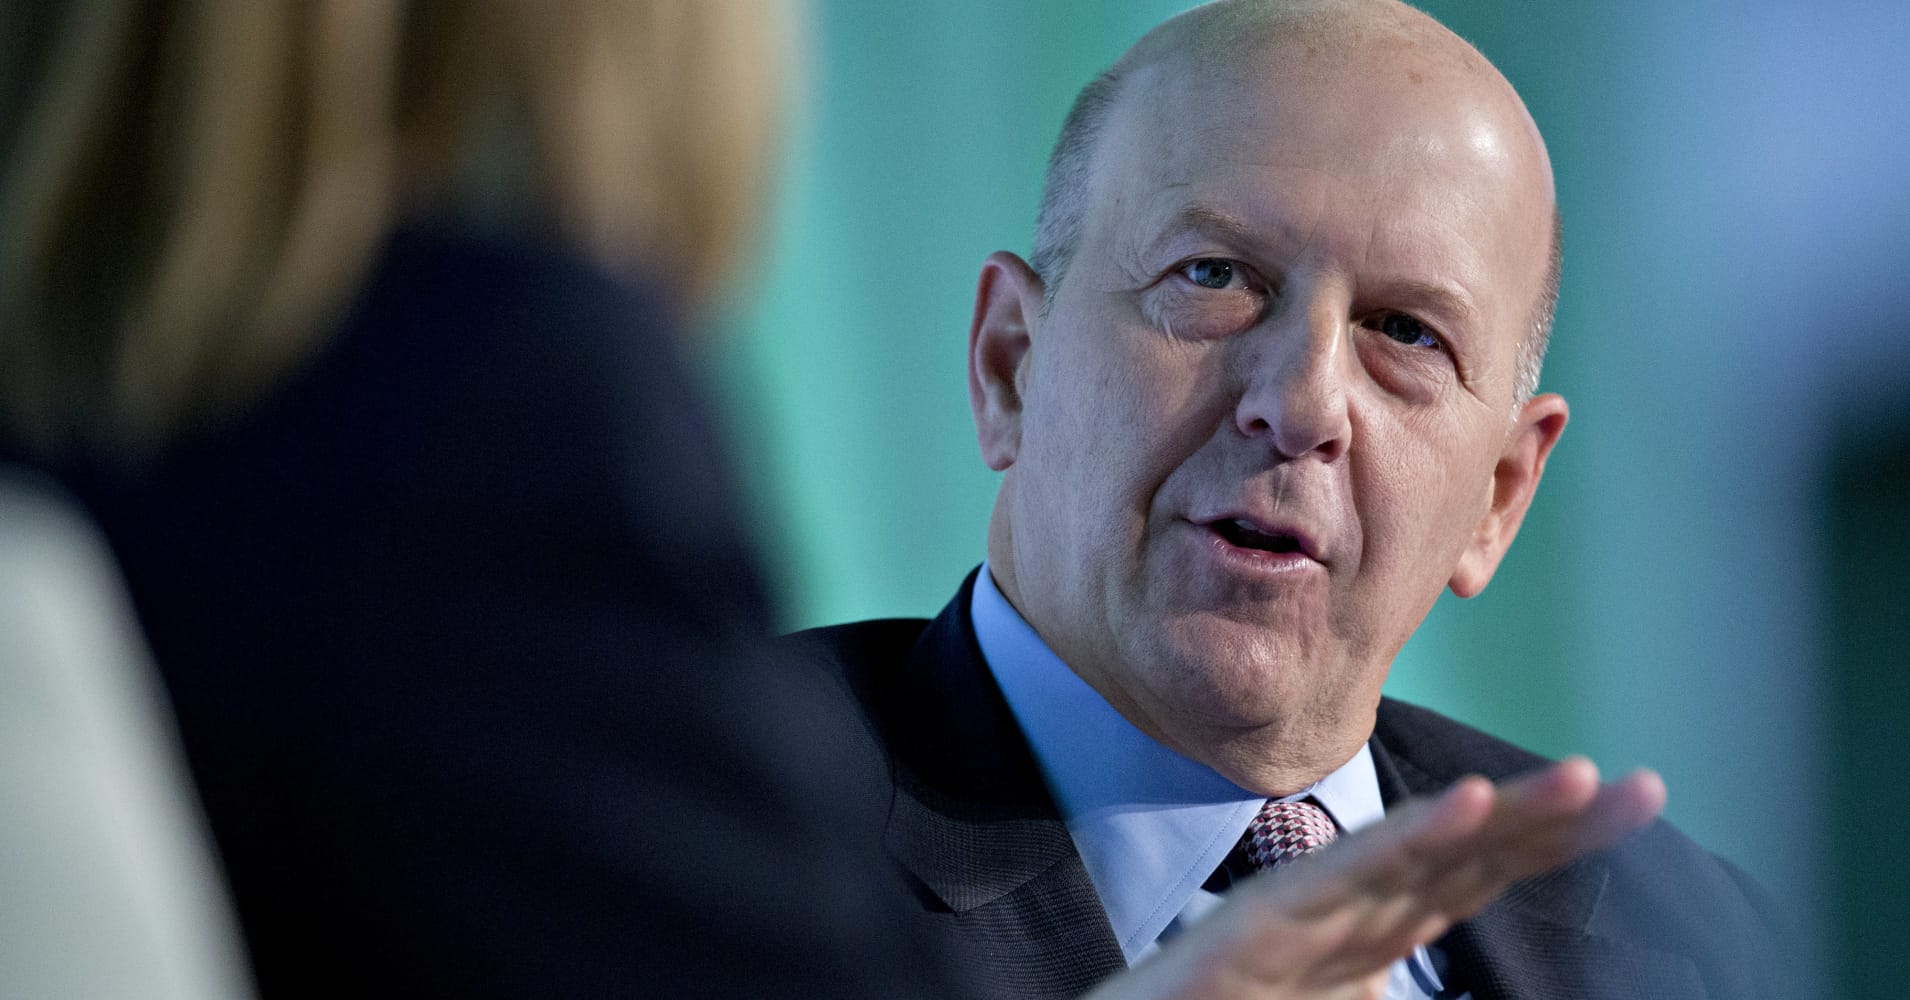 Goldman Sachs CEO David Solomon slashes pay for his employees as revenue drops